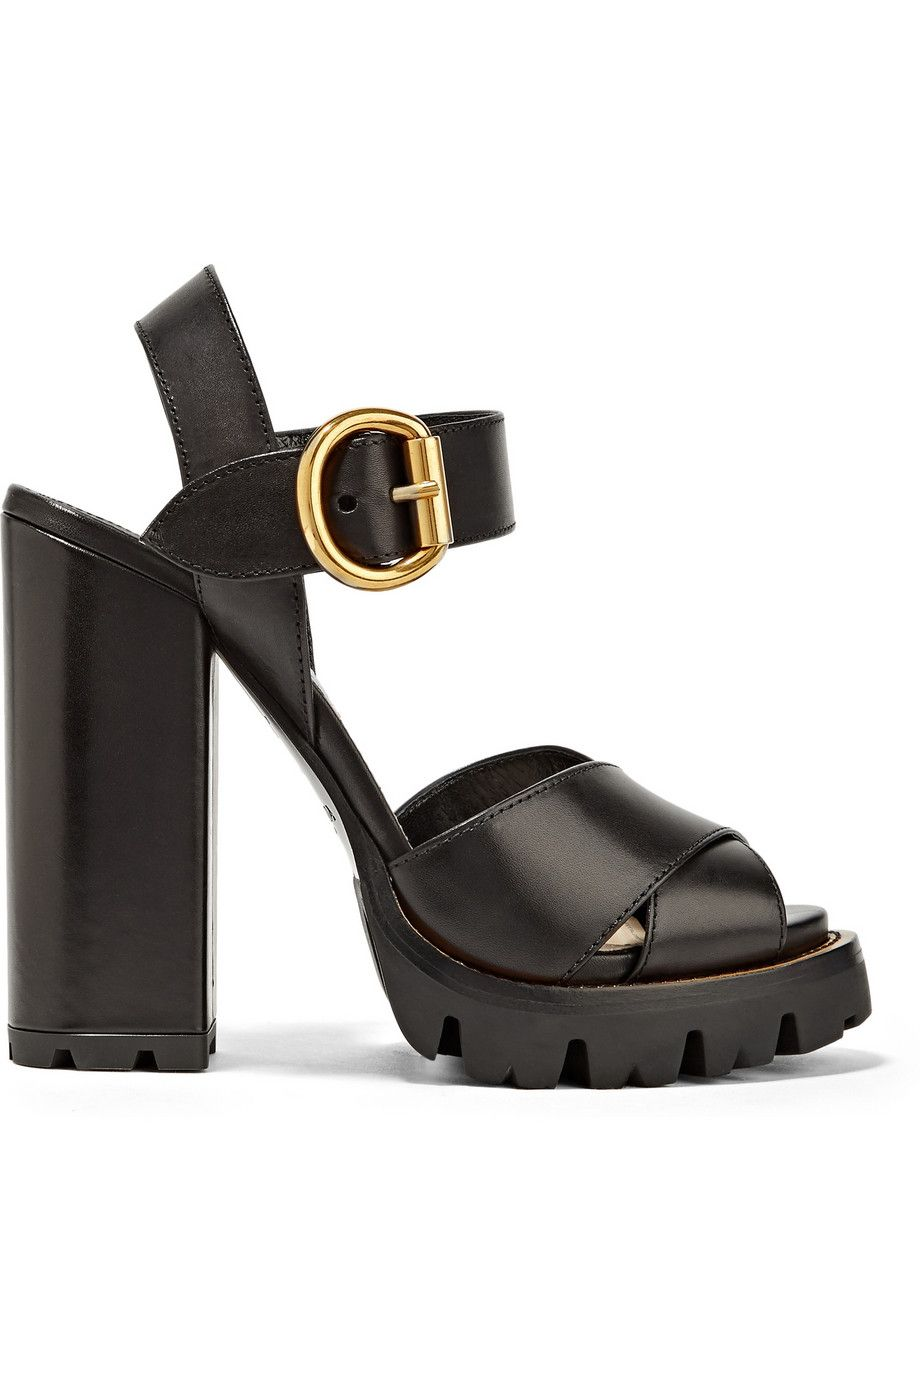 a8227abed28360 Heel measures approximately 5 inches with a 1 inch platform Black leather  Buckle-fastening ankle strap Made in Italy